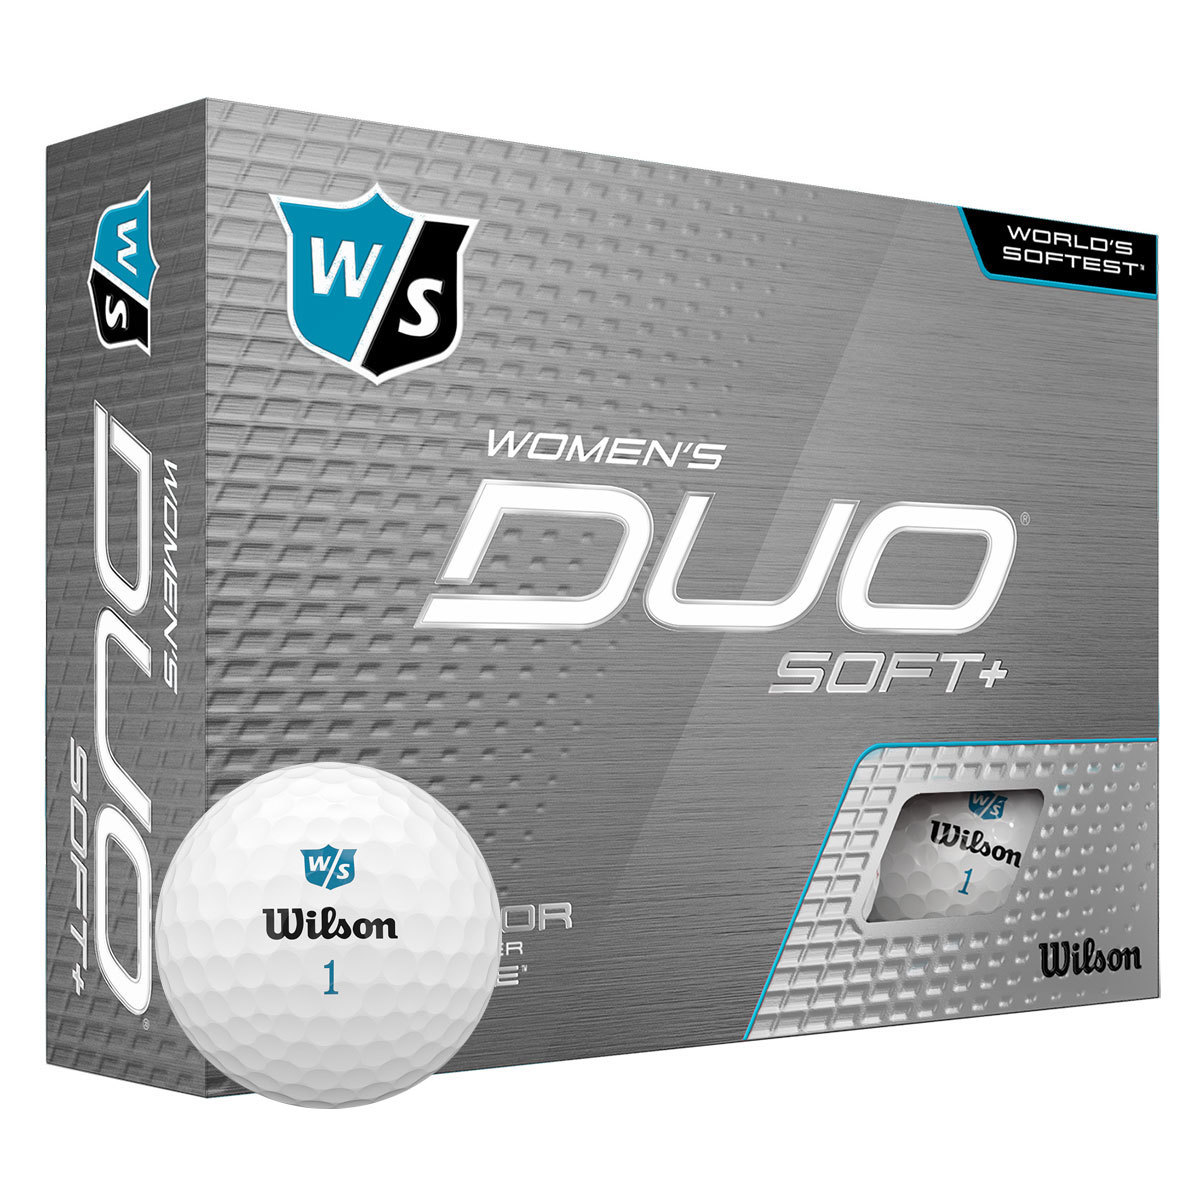 WILSON-LADIES-DUO-SOFT-PLUS.jpg#asset:956301